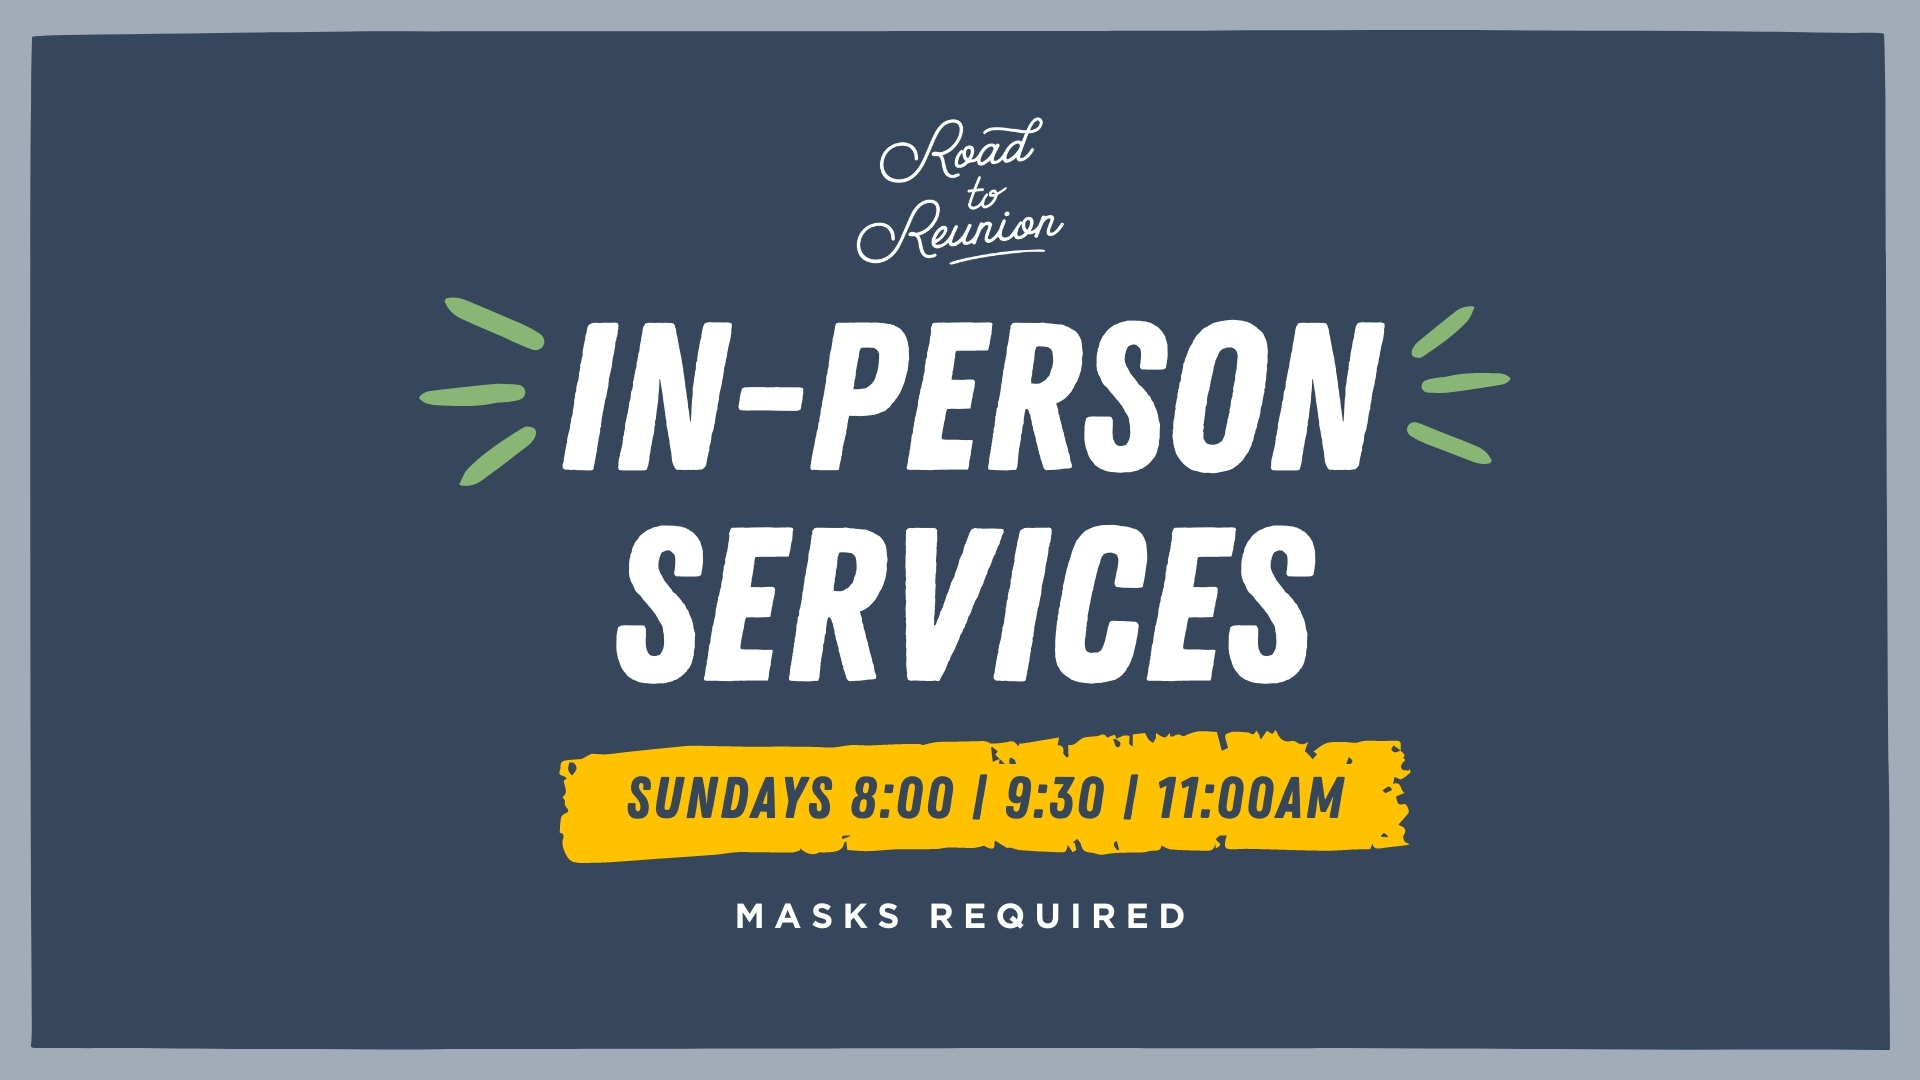 In-Person Services